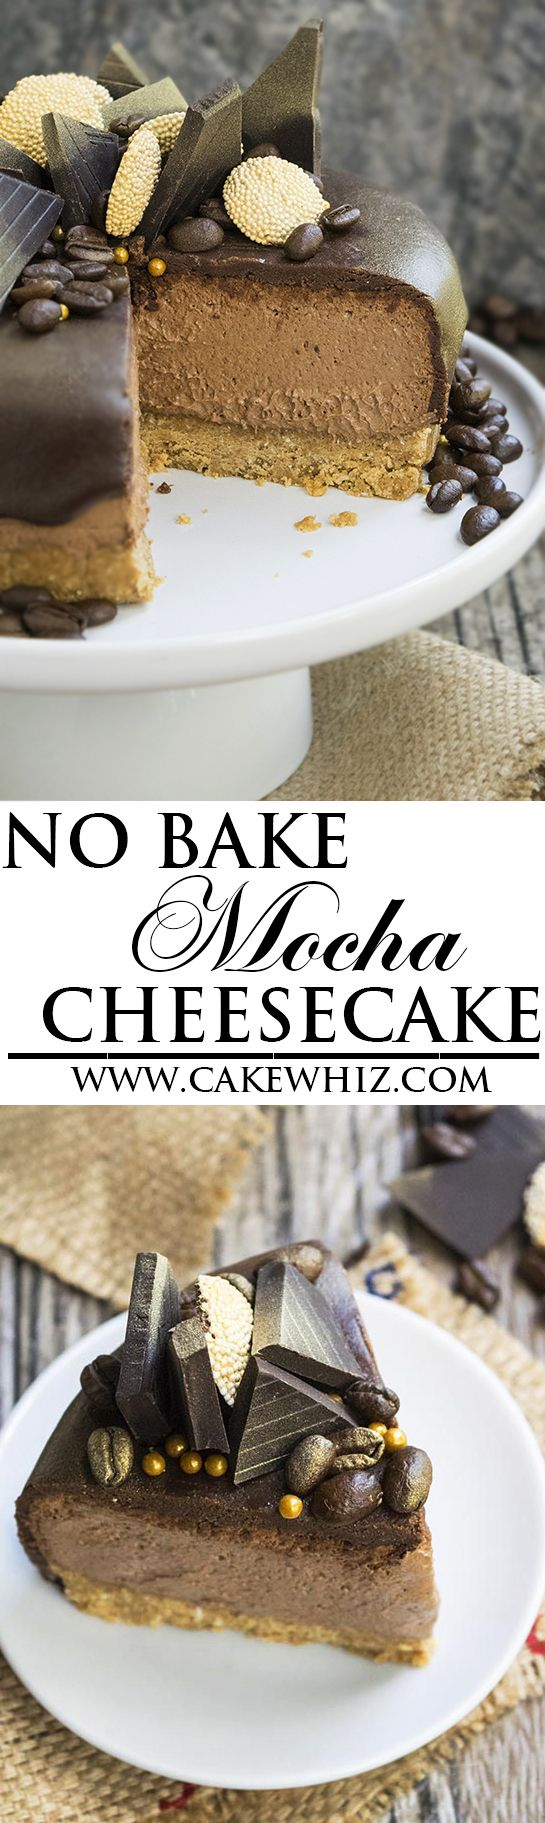 This easy NO BAKE MOCHA CHEESECAKE recipe makes the perfect dessert for Summer parties. It's packed with rich chocolate and coffee/espresso flavors. Also included are lots of tips on how to make perfect no bake cheesecakes every time as well as the perfect graham cracker crust. {Ad} From cakewhiz.com